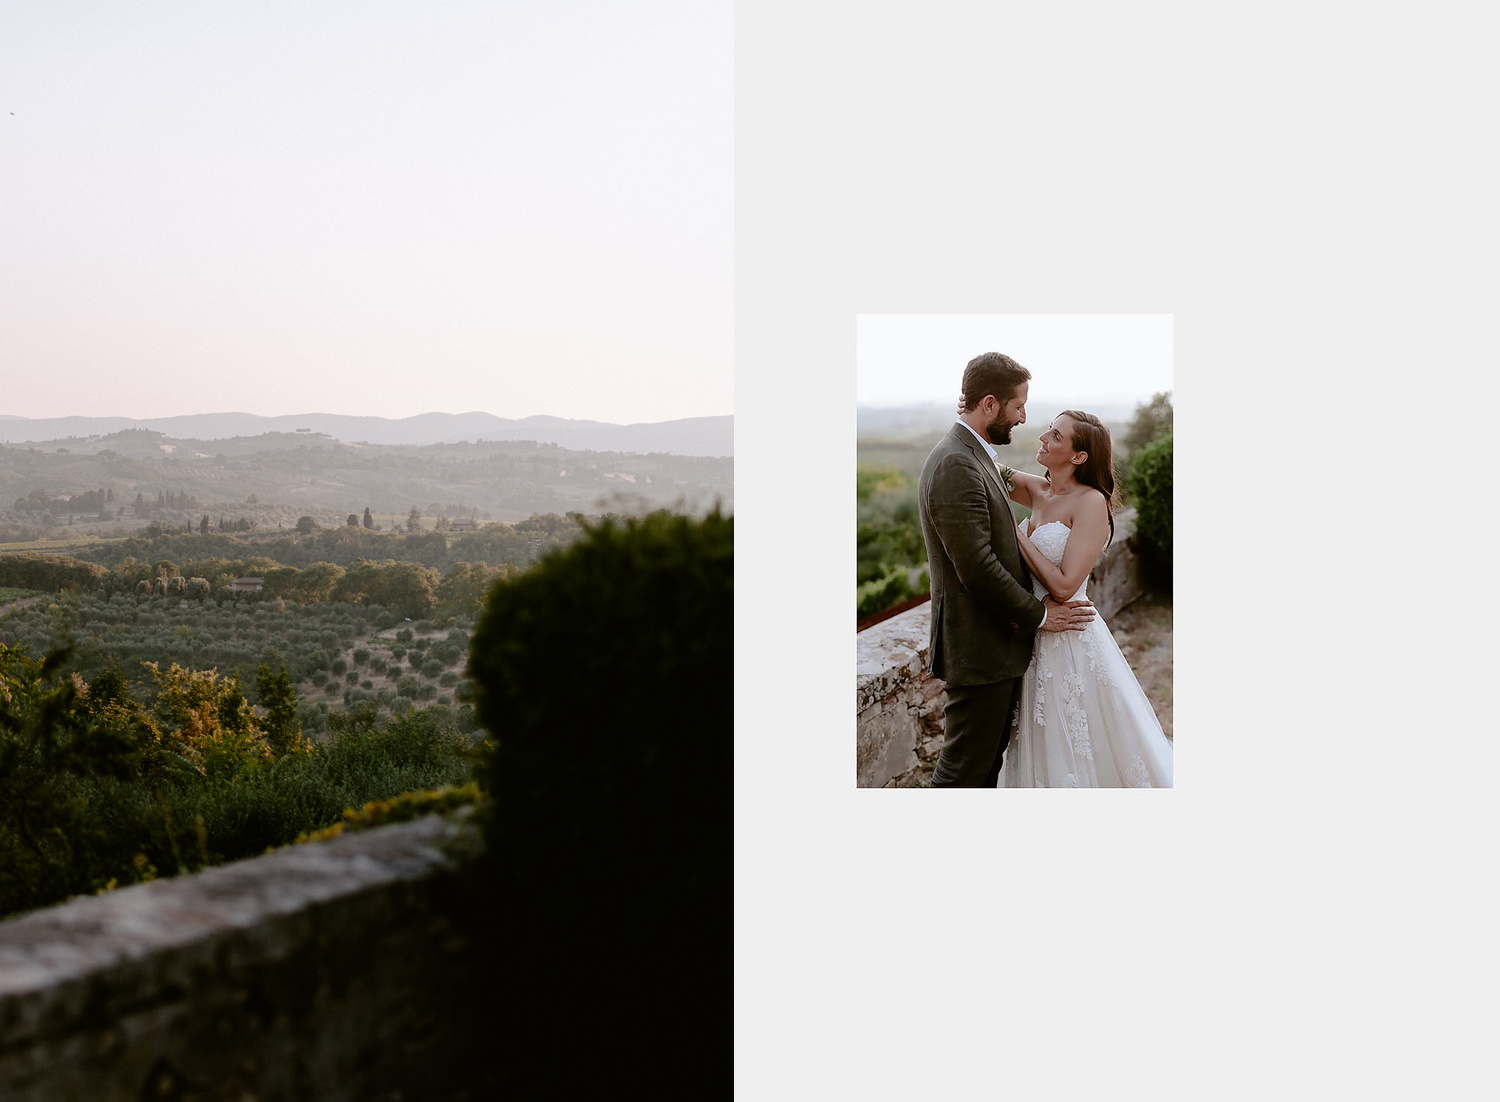 villa catignano wedding photogprapher siena symbolic jewish marriage outdoor couple session